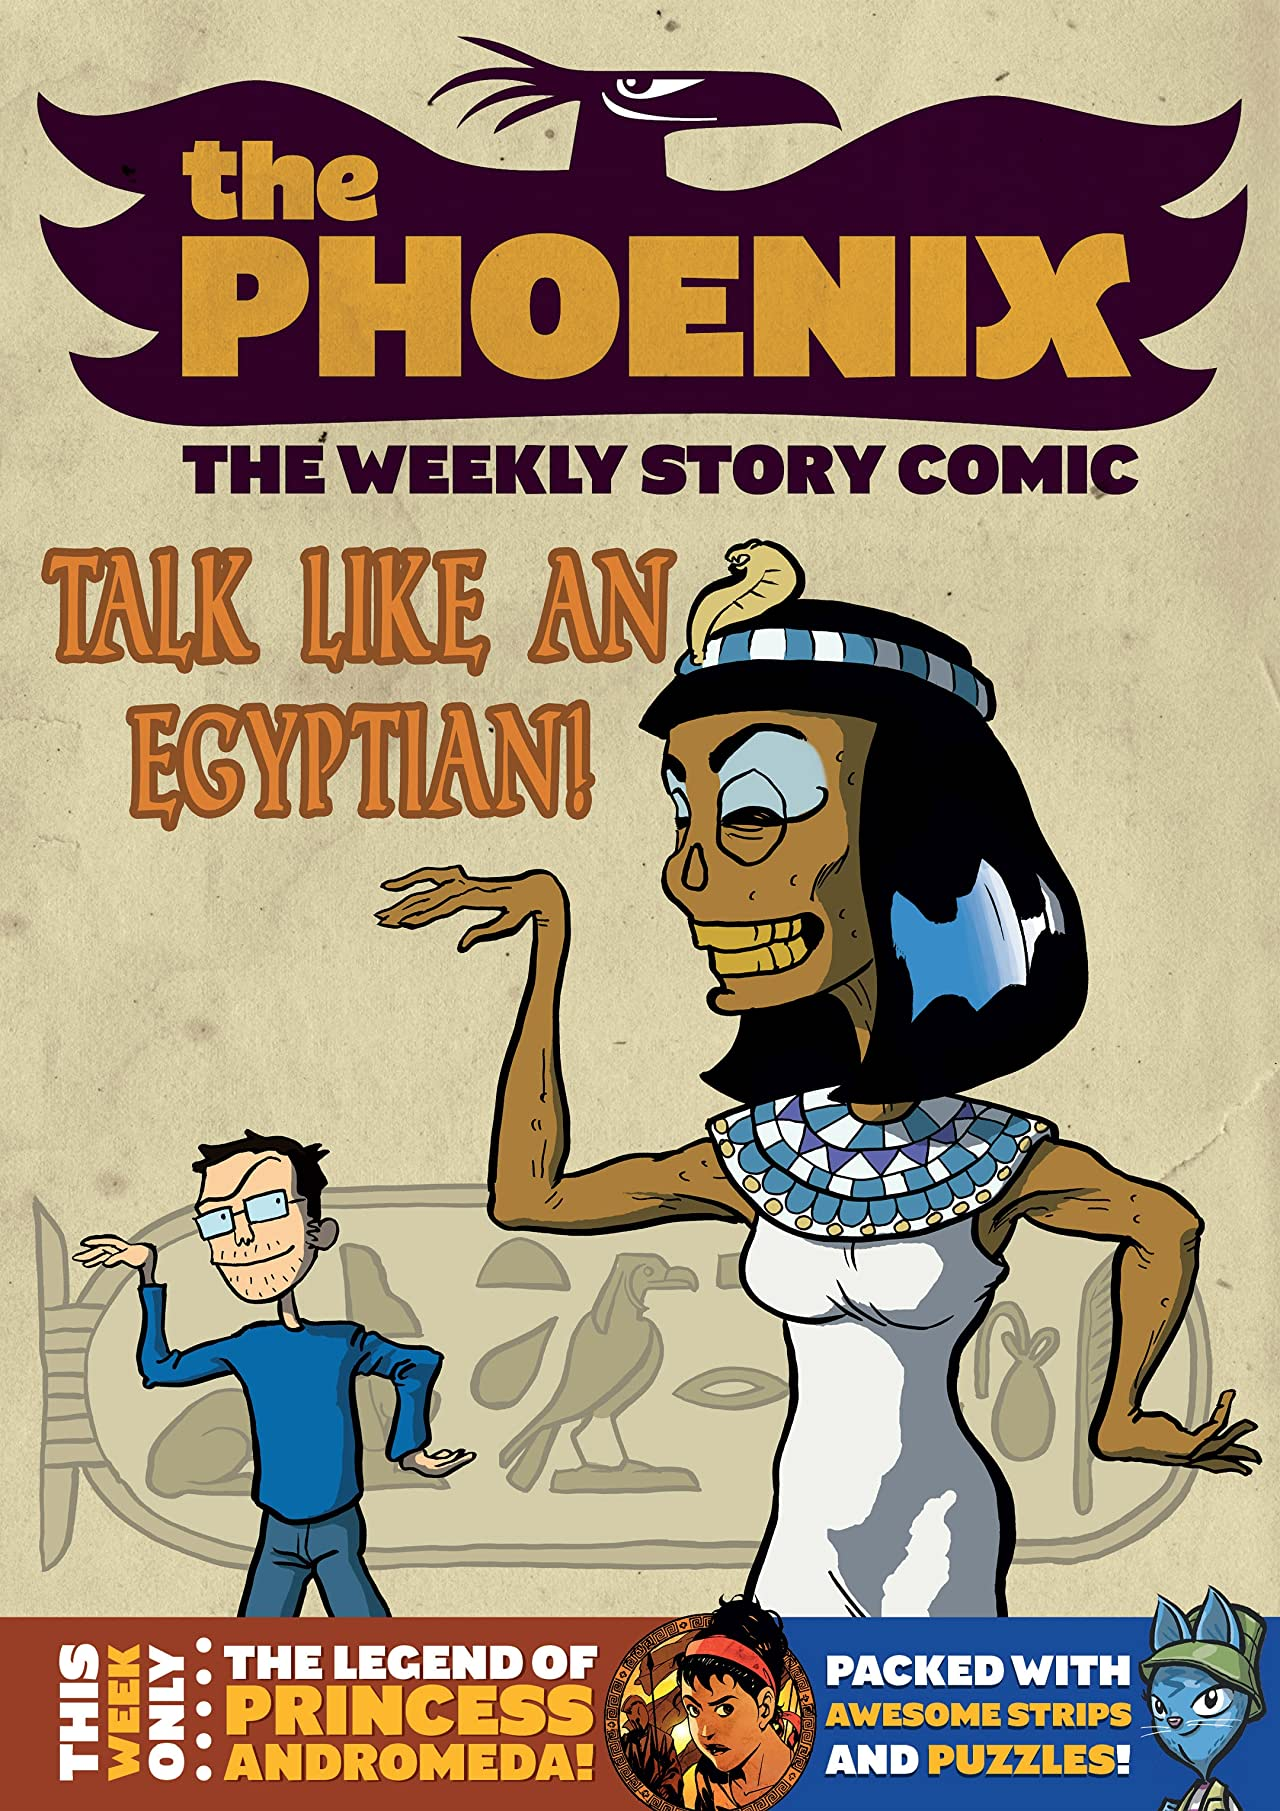 The Phoenix #25: The Weekly Story Comic